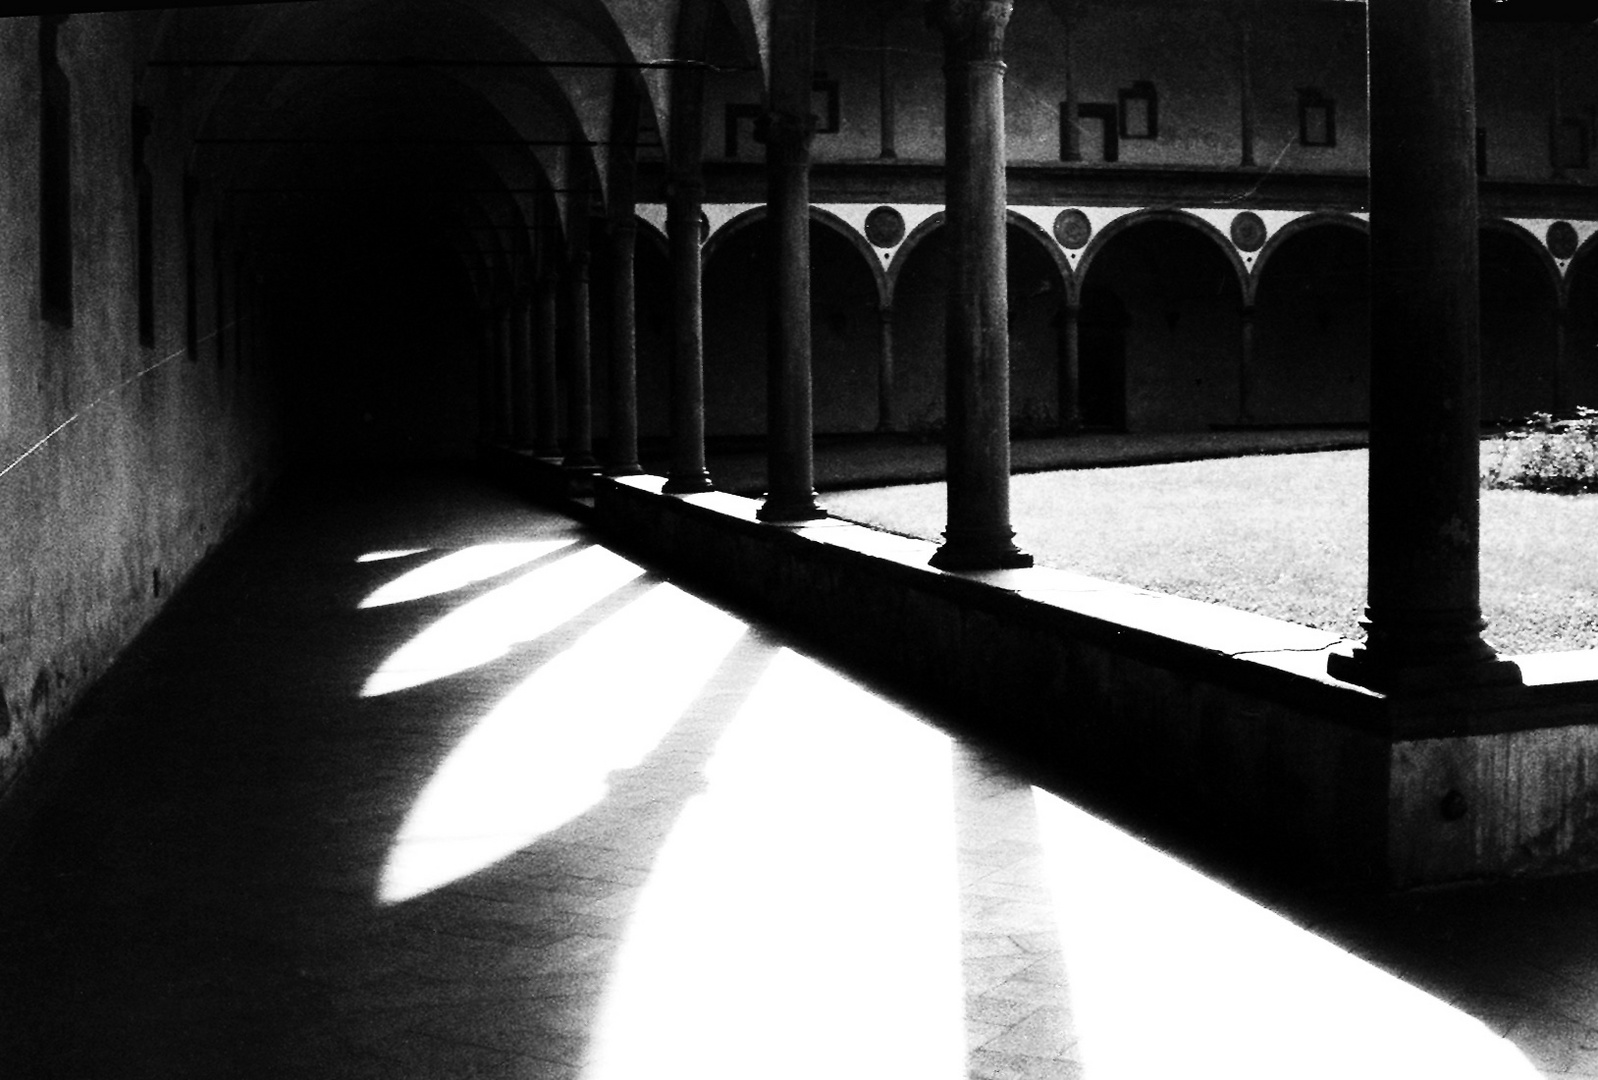 ** CLOISTERS OF SANTA CROCE - FIRENZE